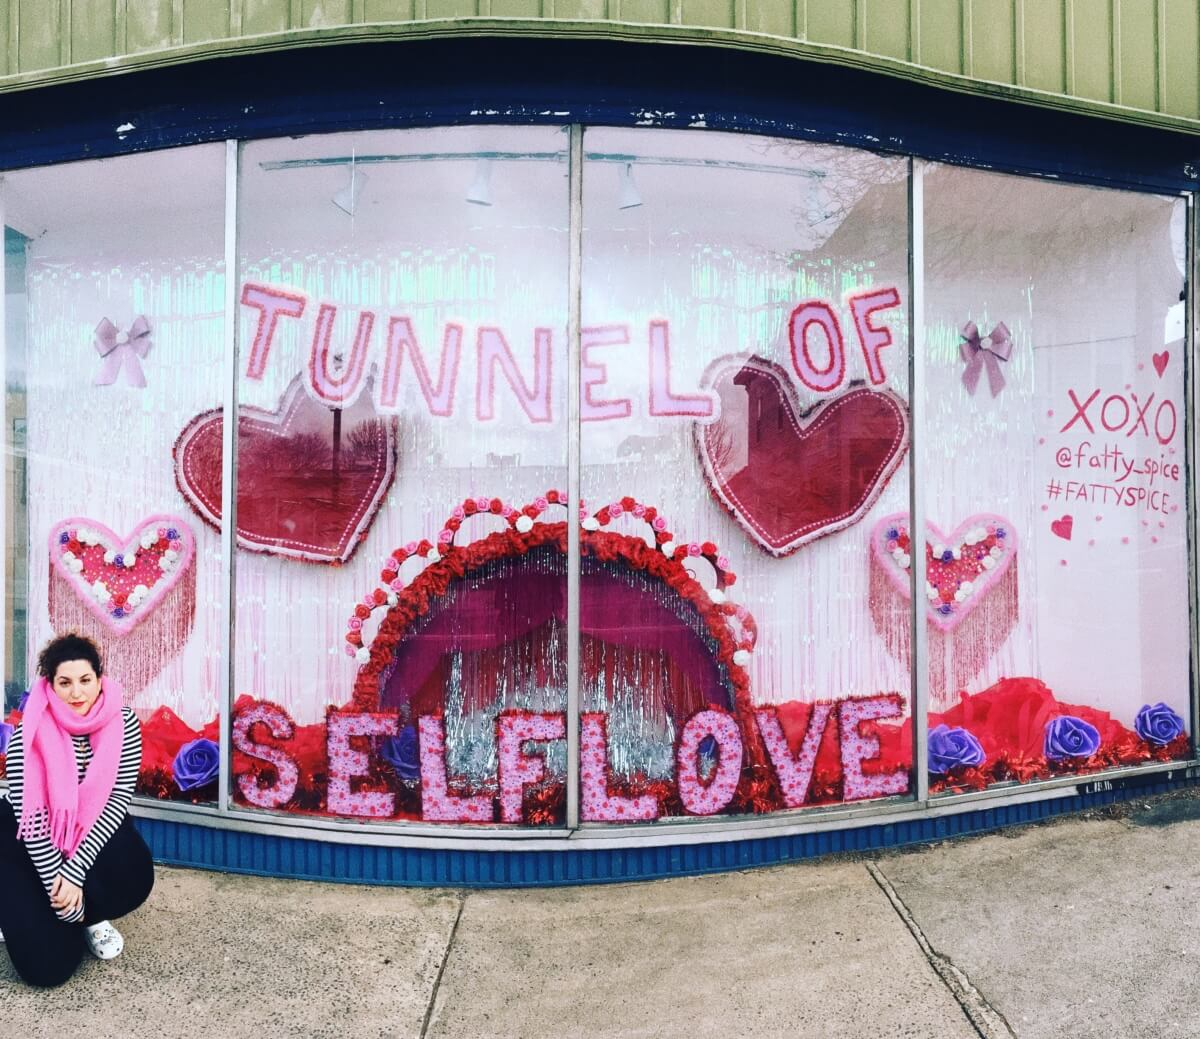 Tunnel of Self Love